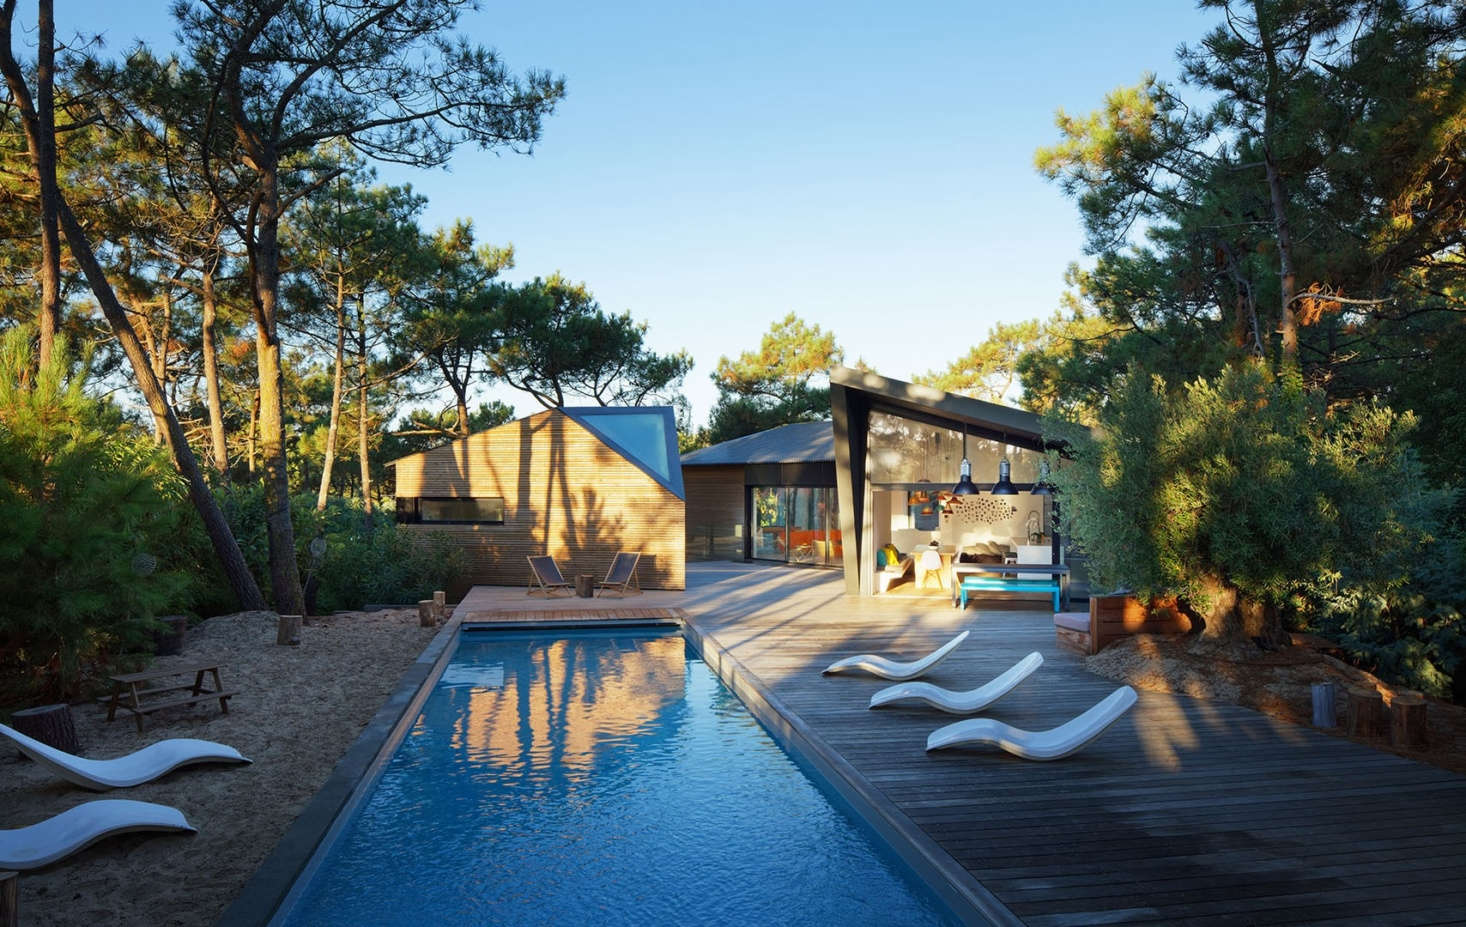 The Cap Ferret headland is covered in sandy soil; the landscape exaggerates the sand with a &#8